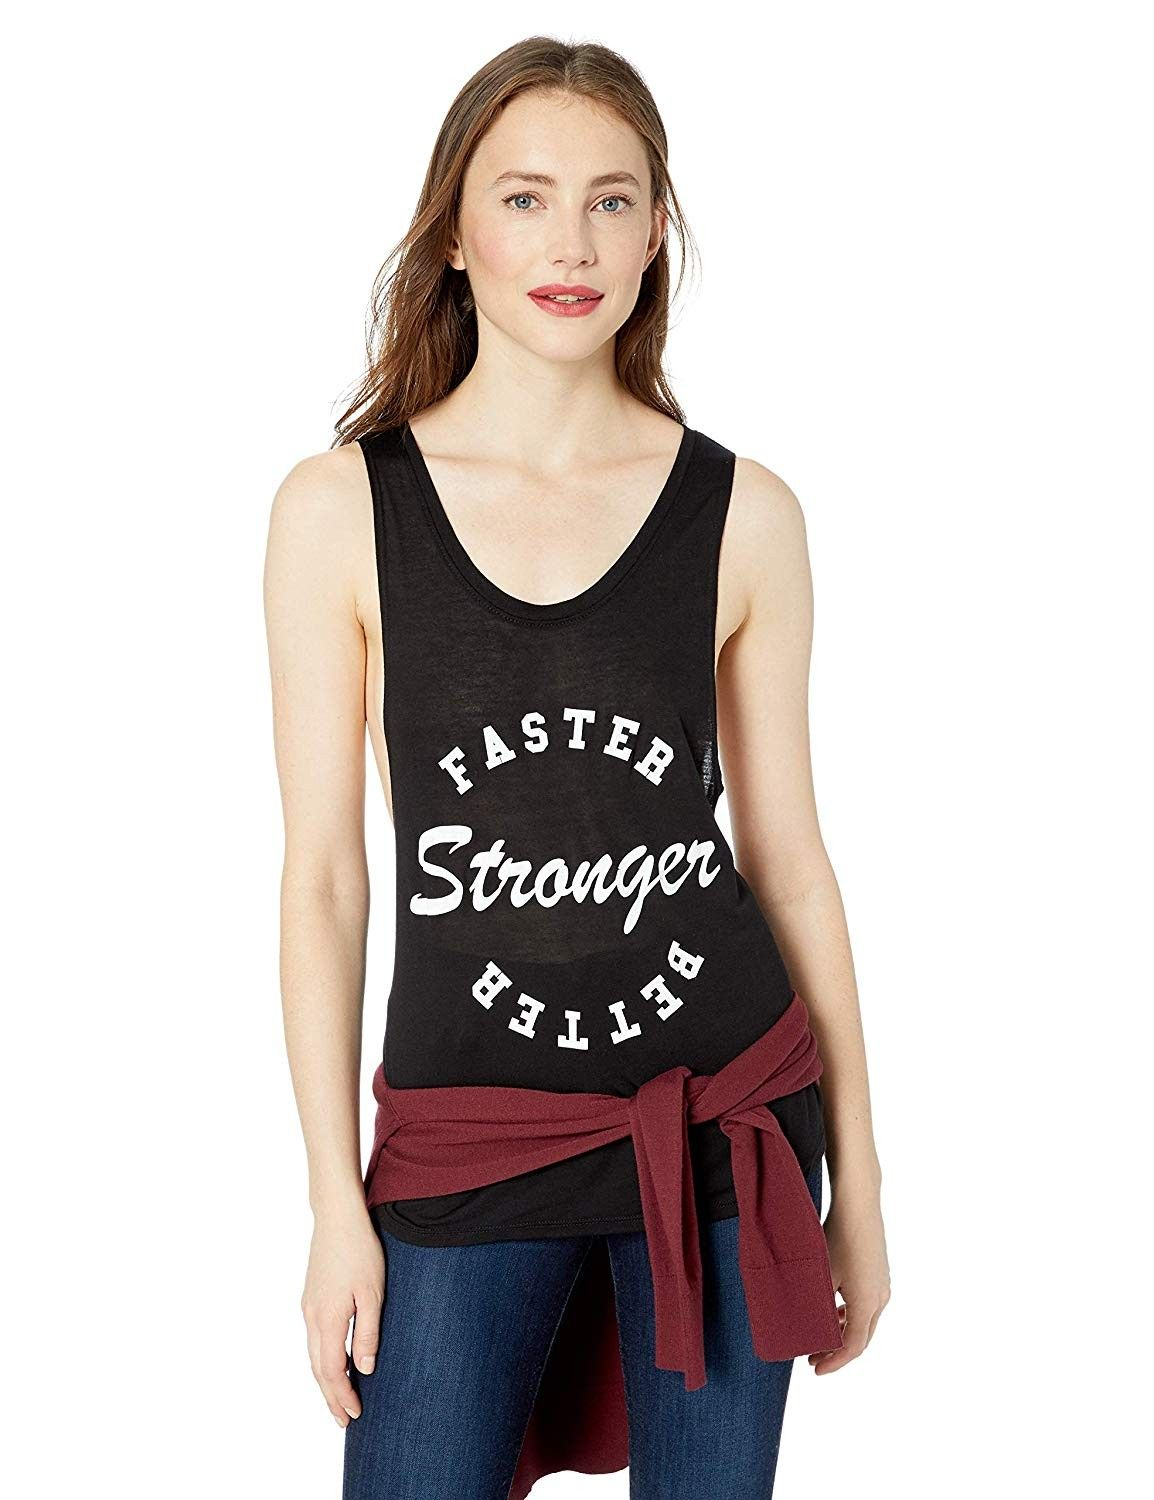 Women's Faster - Stronger Muscle Tank - Black W/White Text - C418GE92G2O - Sports & Fitness Clothing...